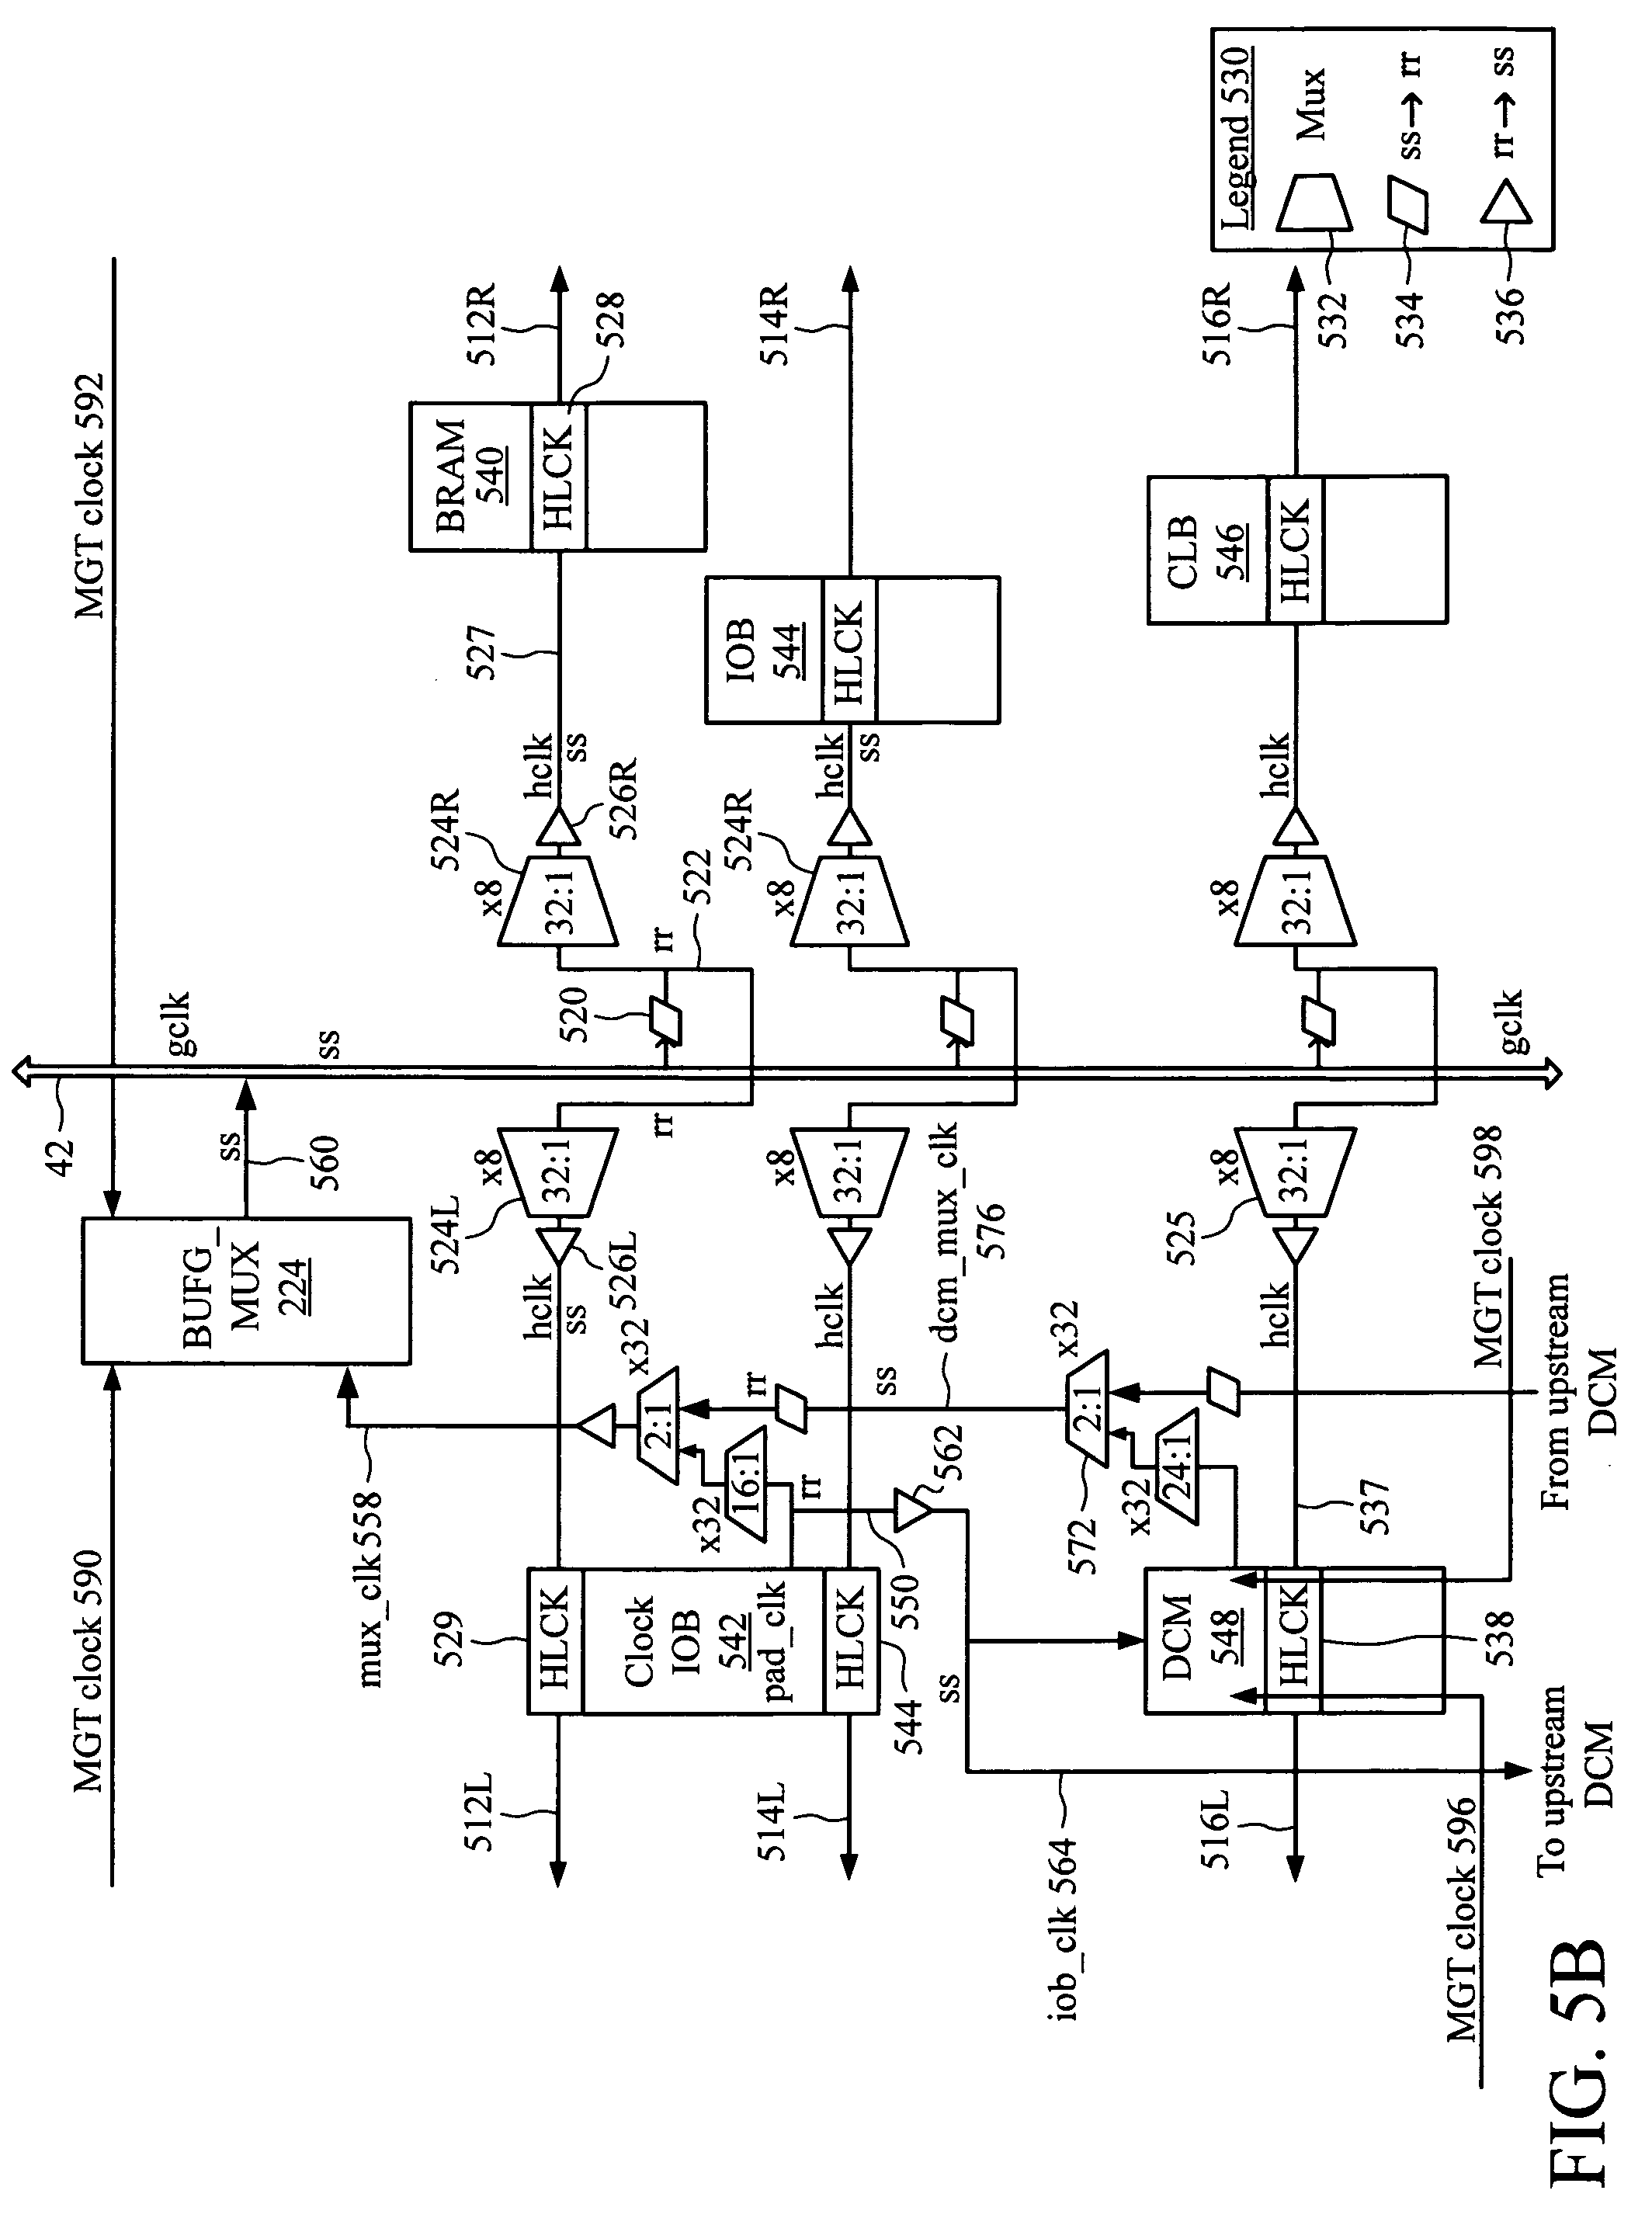 patent us7518401 - differential clock tree in an integrated circuit